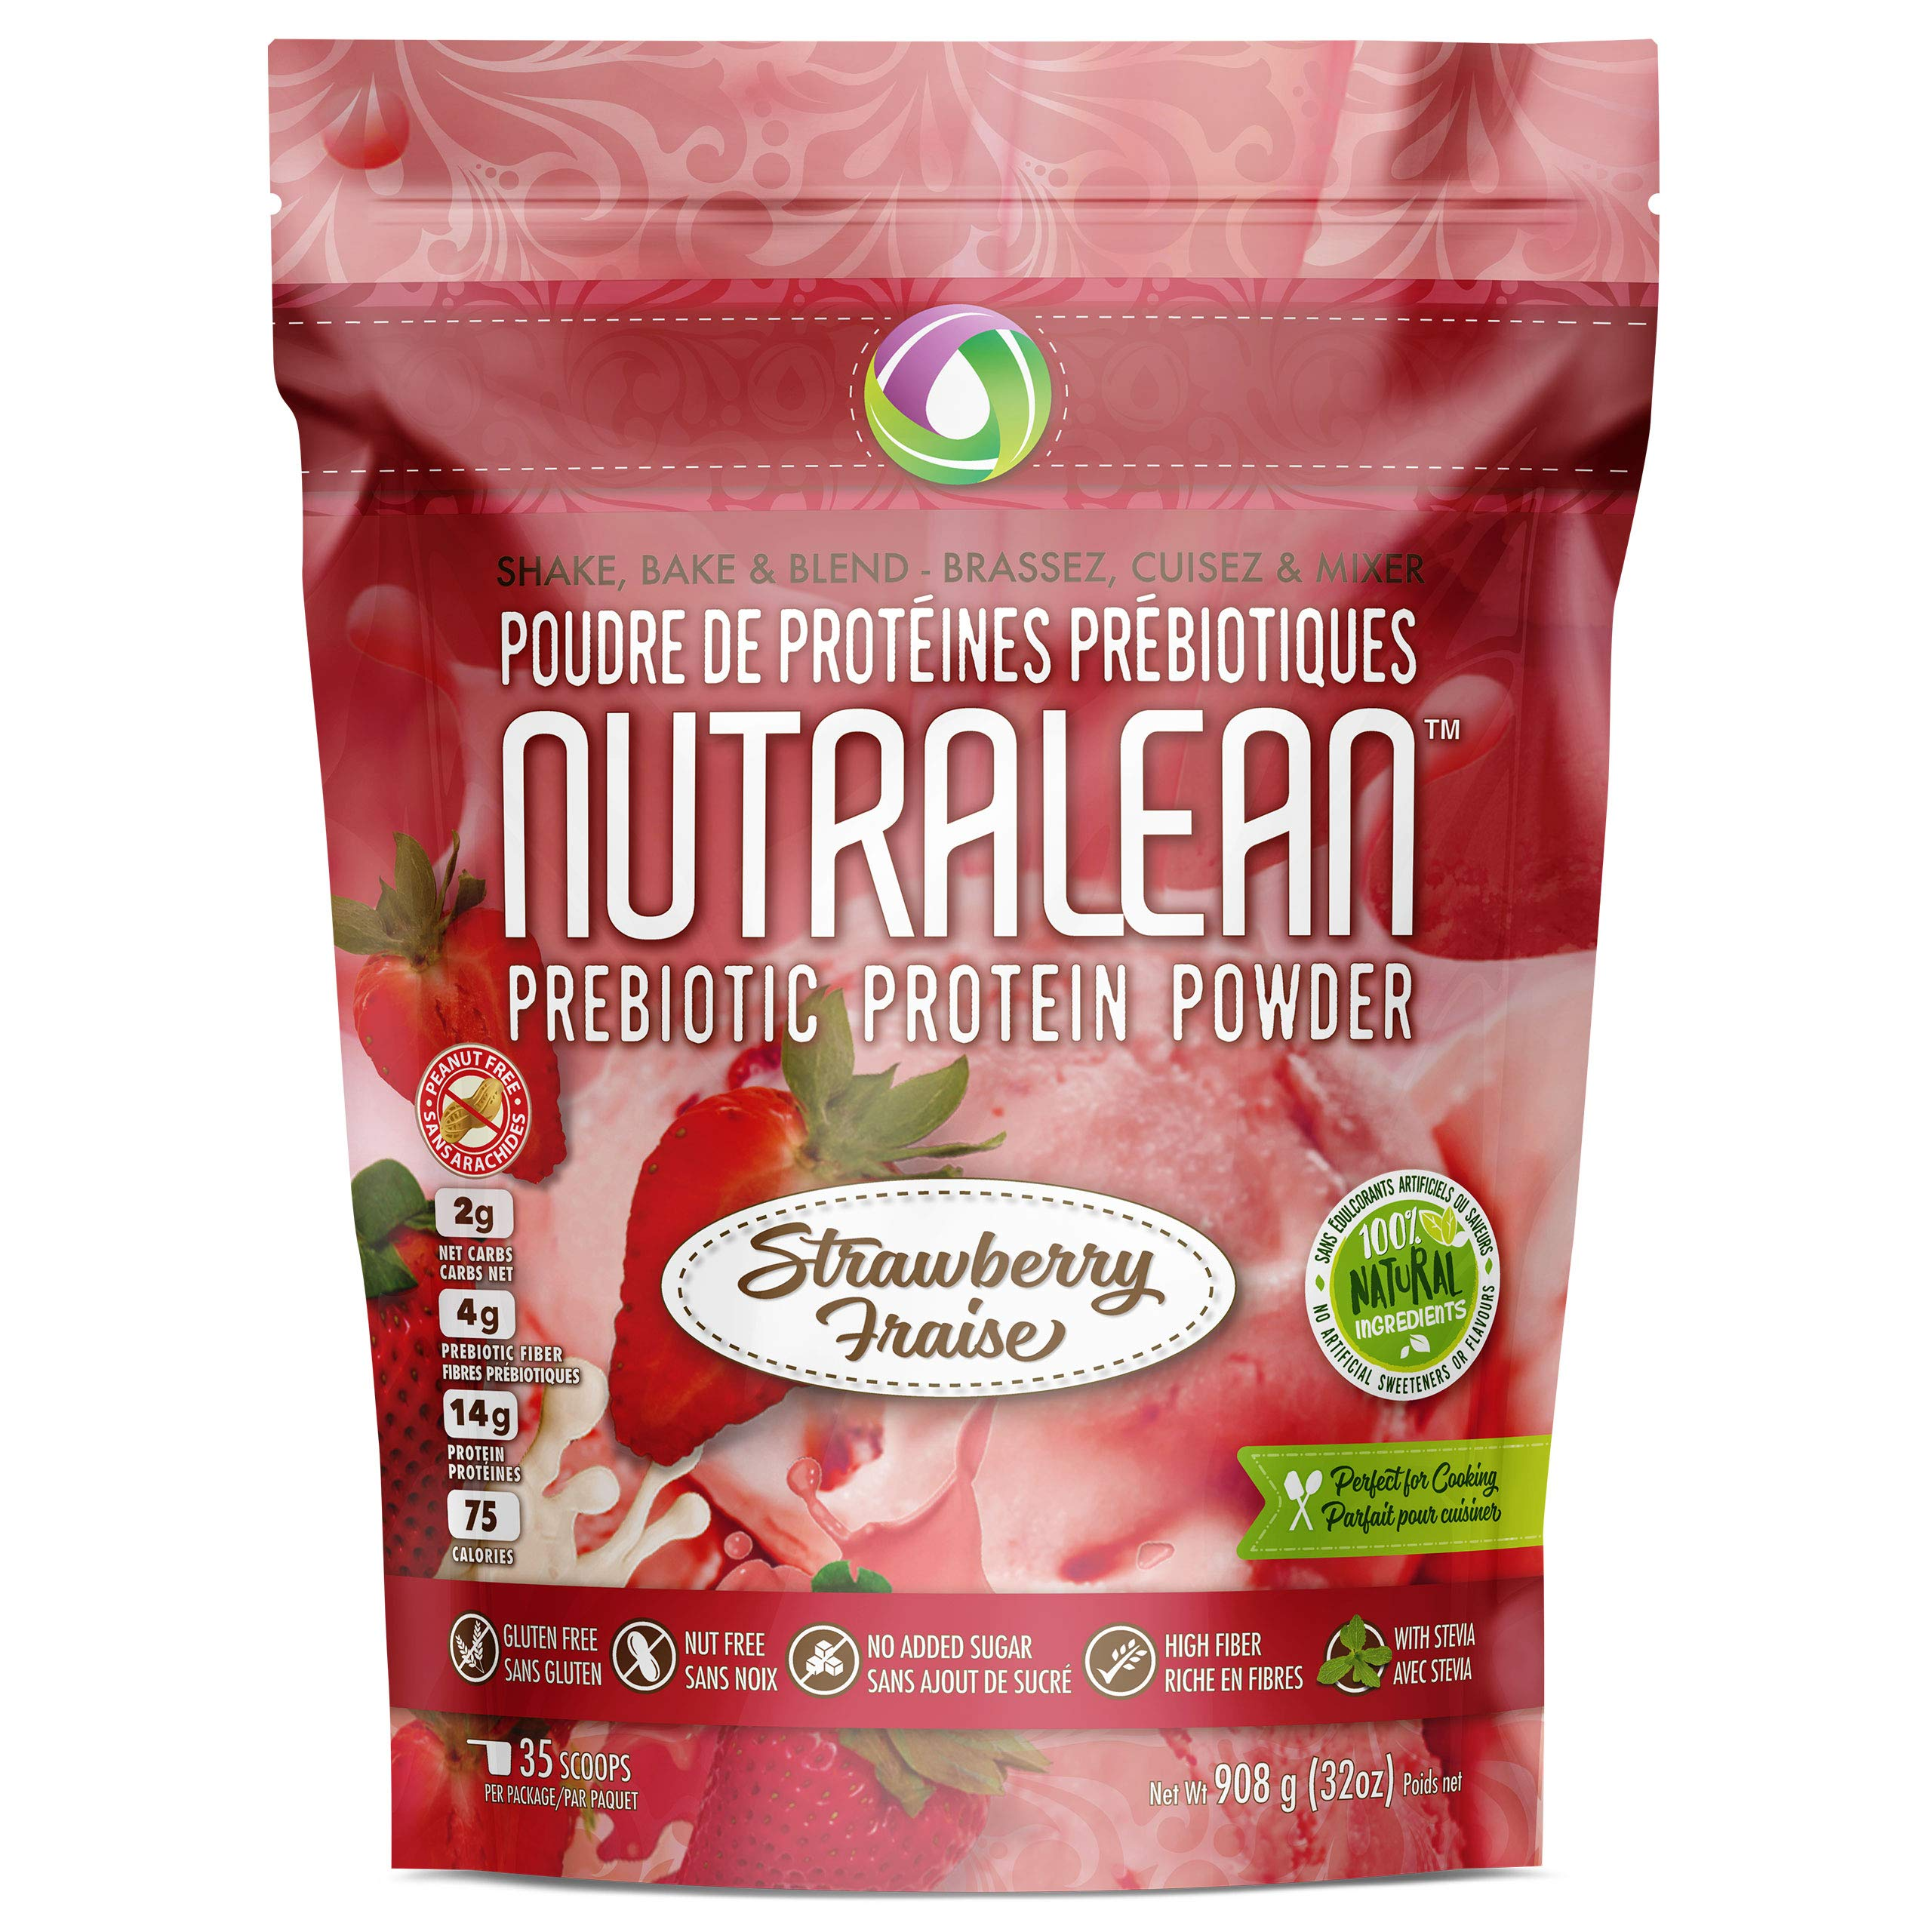 NUTRALEAN - Strawberry Prebiotic Protein Powder - 100% All Natural | Peanut-Free | Nut-Free | Gluten-Free | Soy-Free | NO Artificial Sweeteners | Grass Fed Whey | Ideal Keto Shakes & Fiber Supplement by Nutracelle